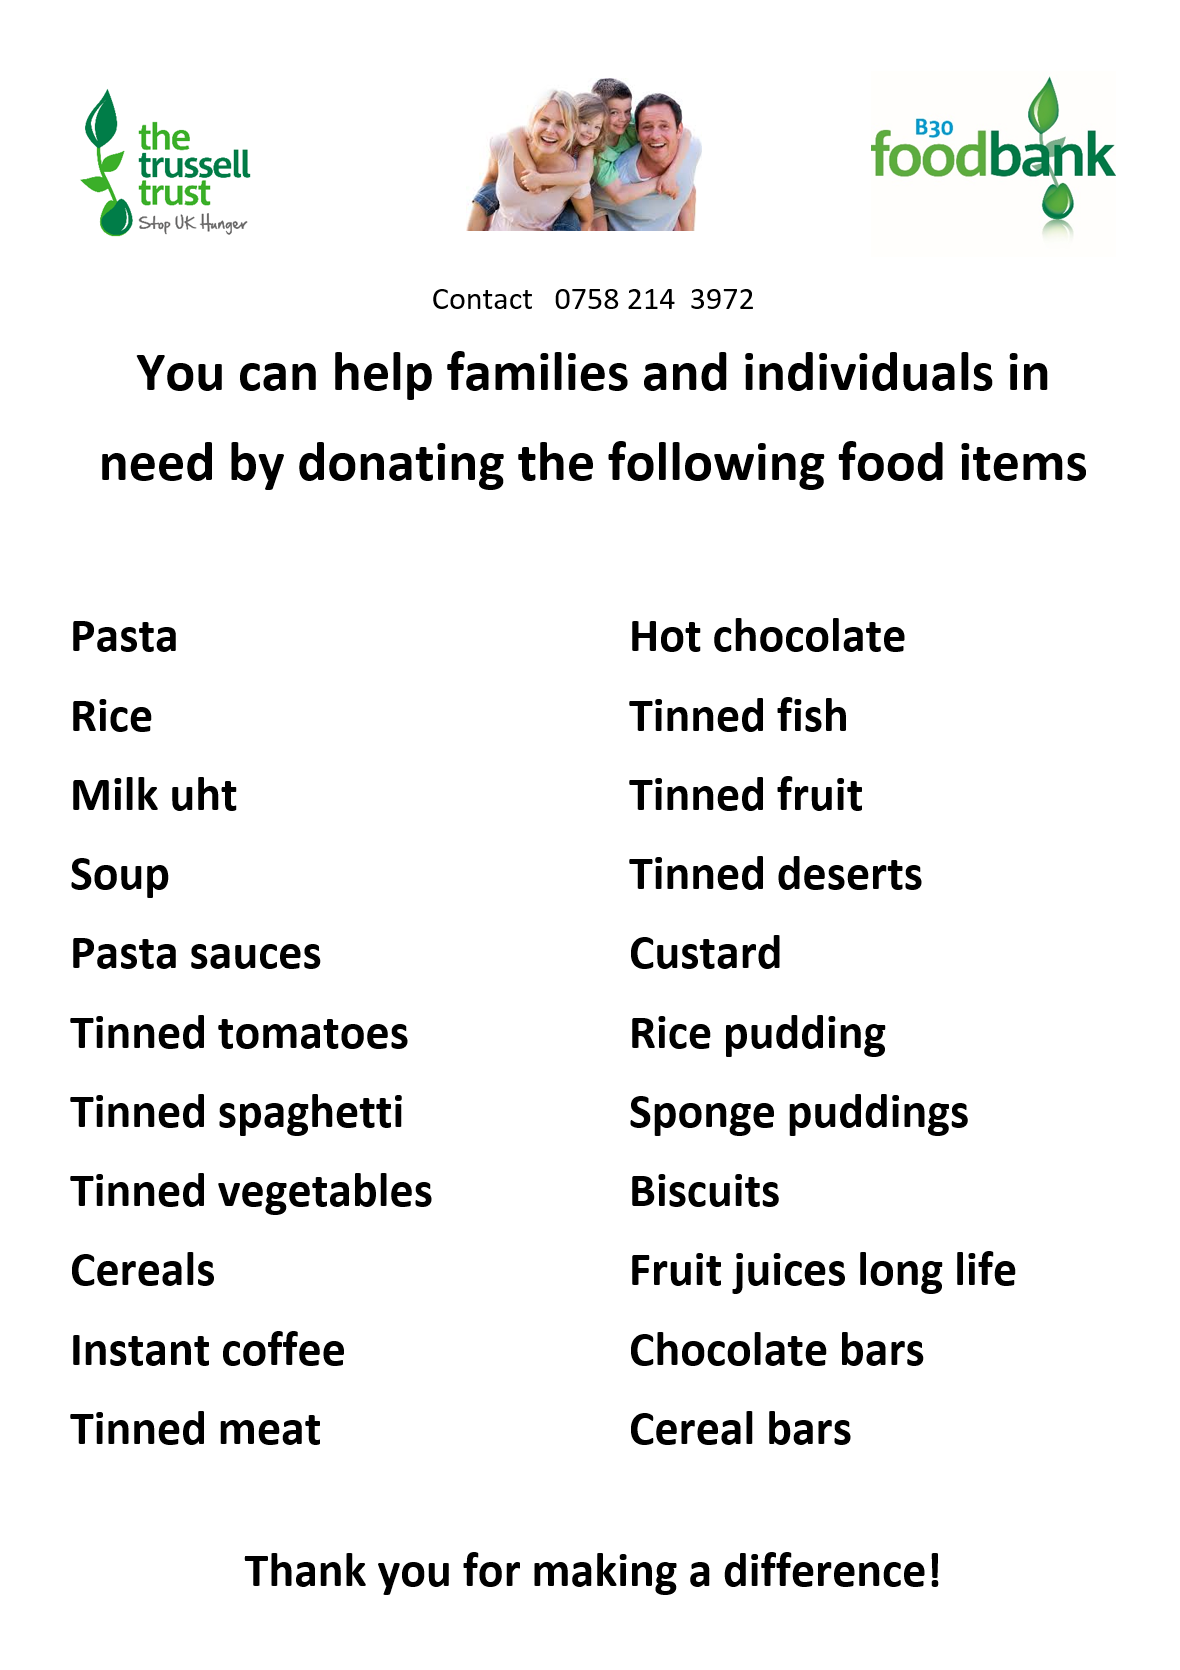 You can help out families and individuals in